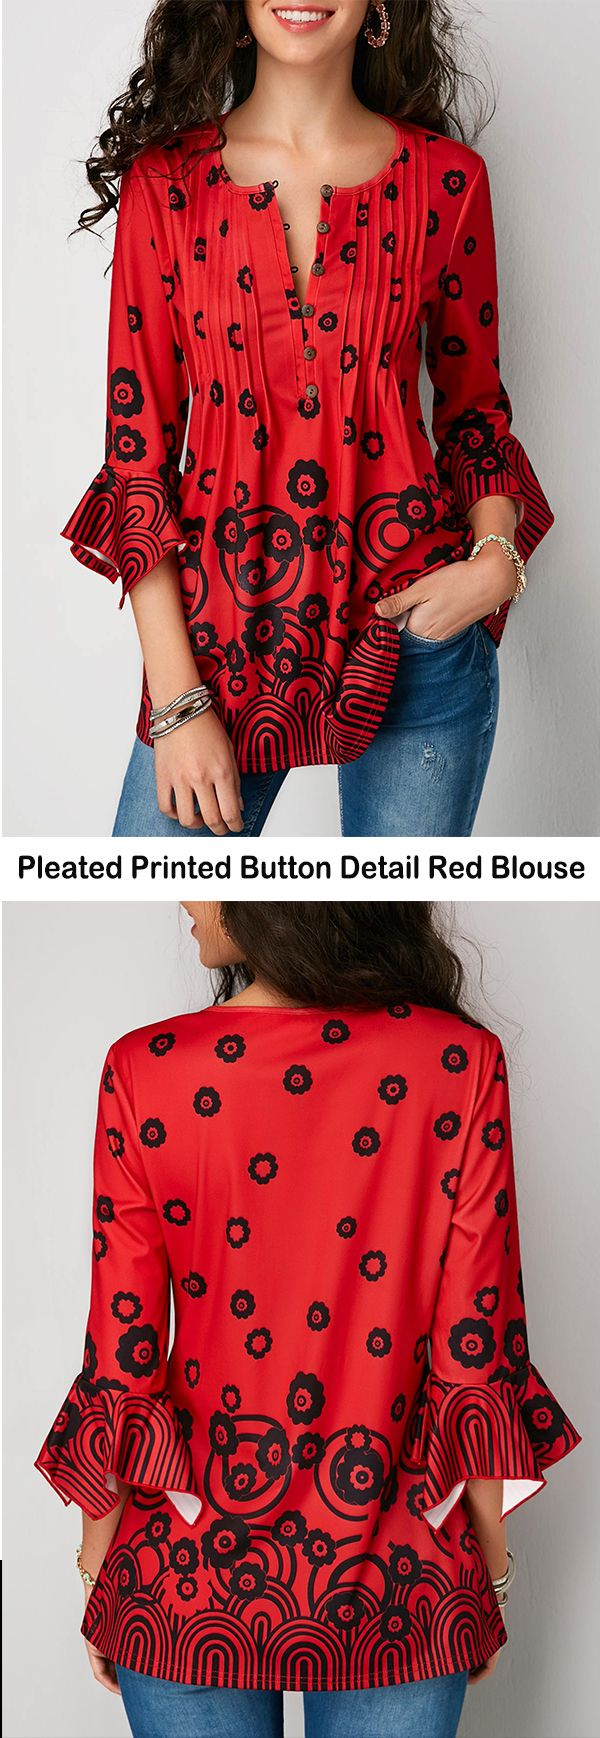 Pleated Printed Button Detail Red Blouse   #liligal #blouse #shirts #top #womenswear